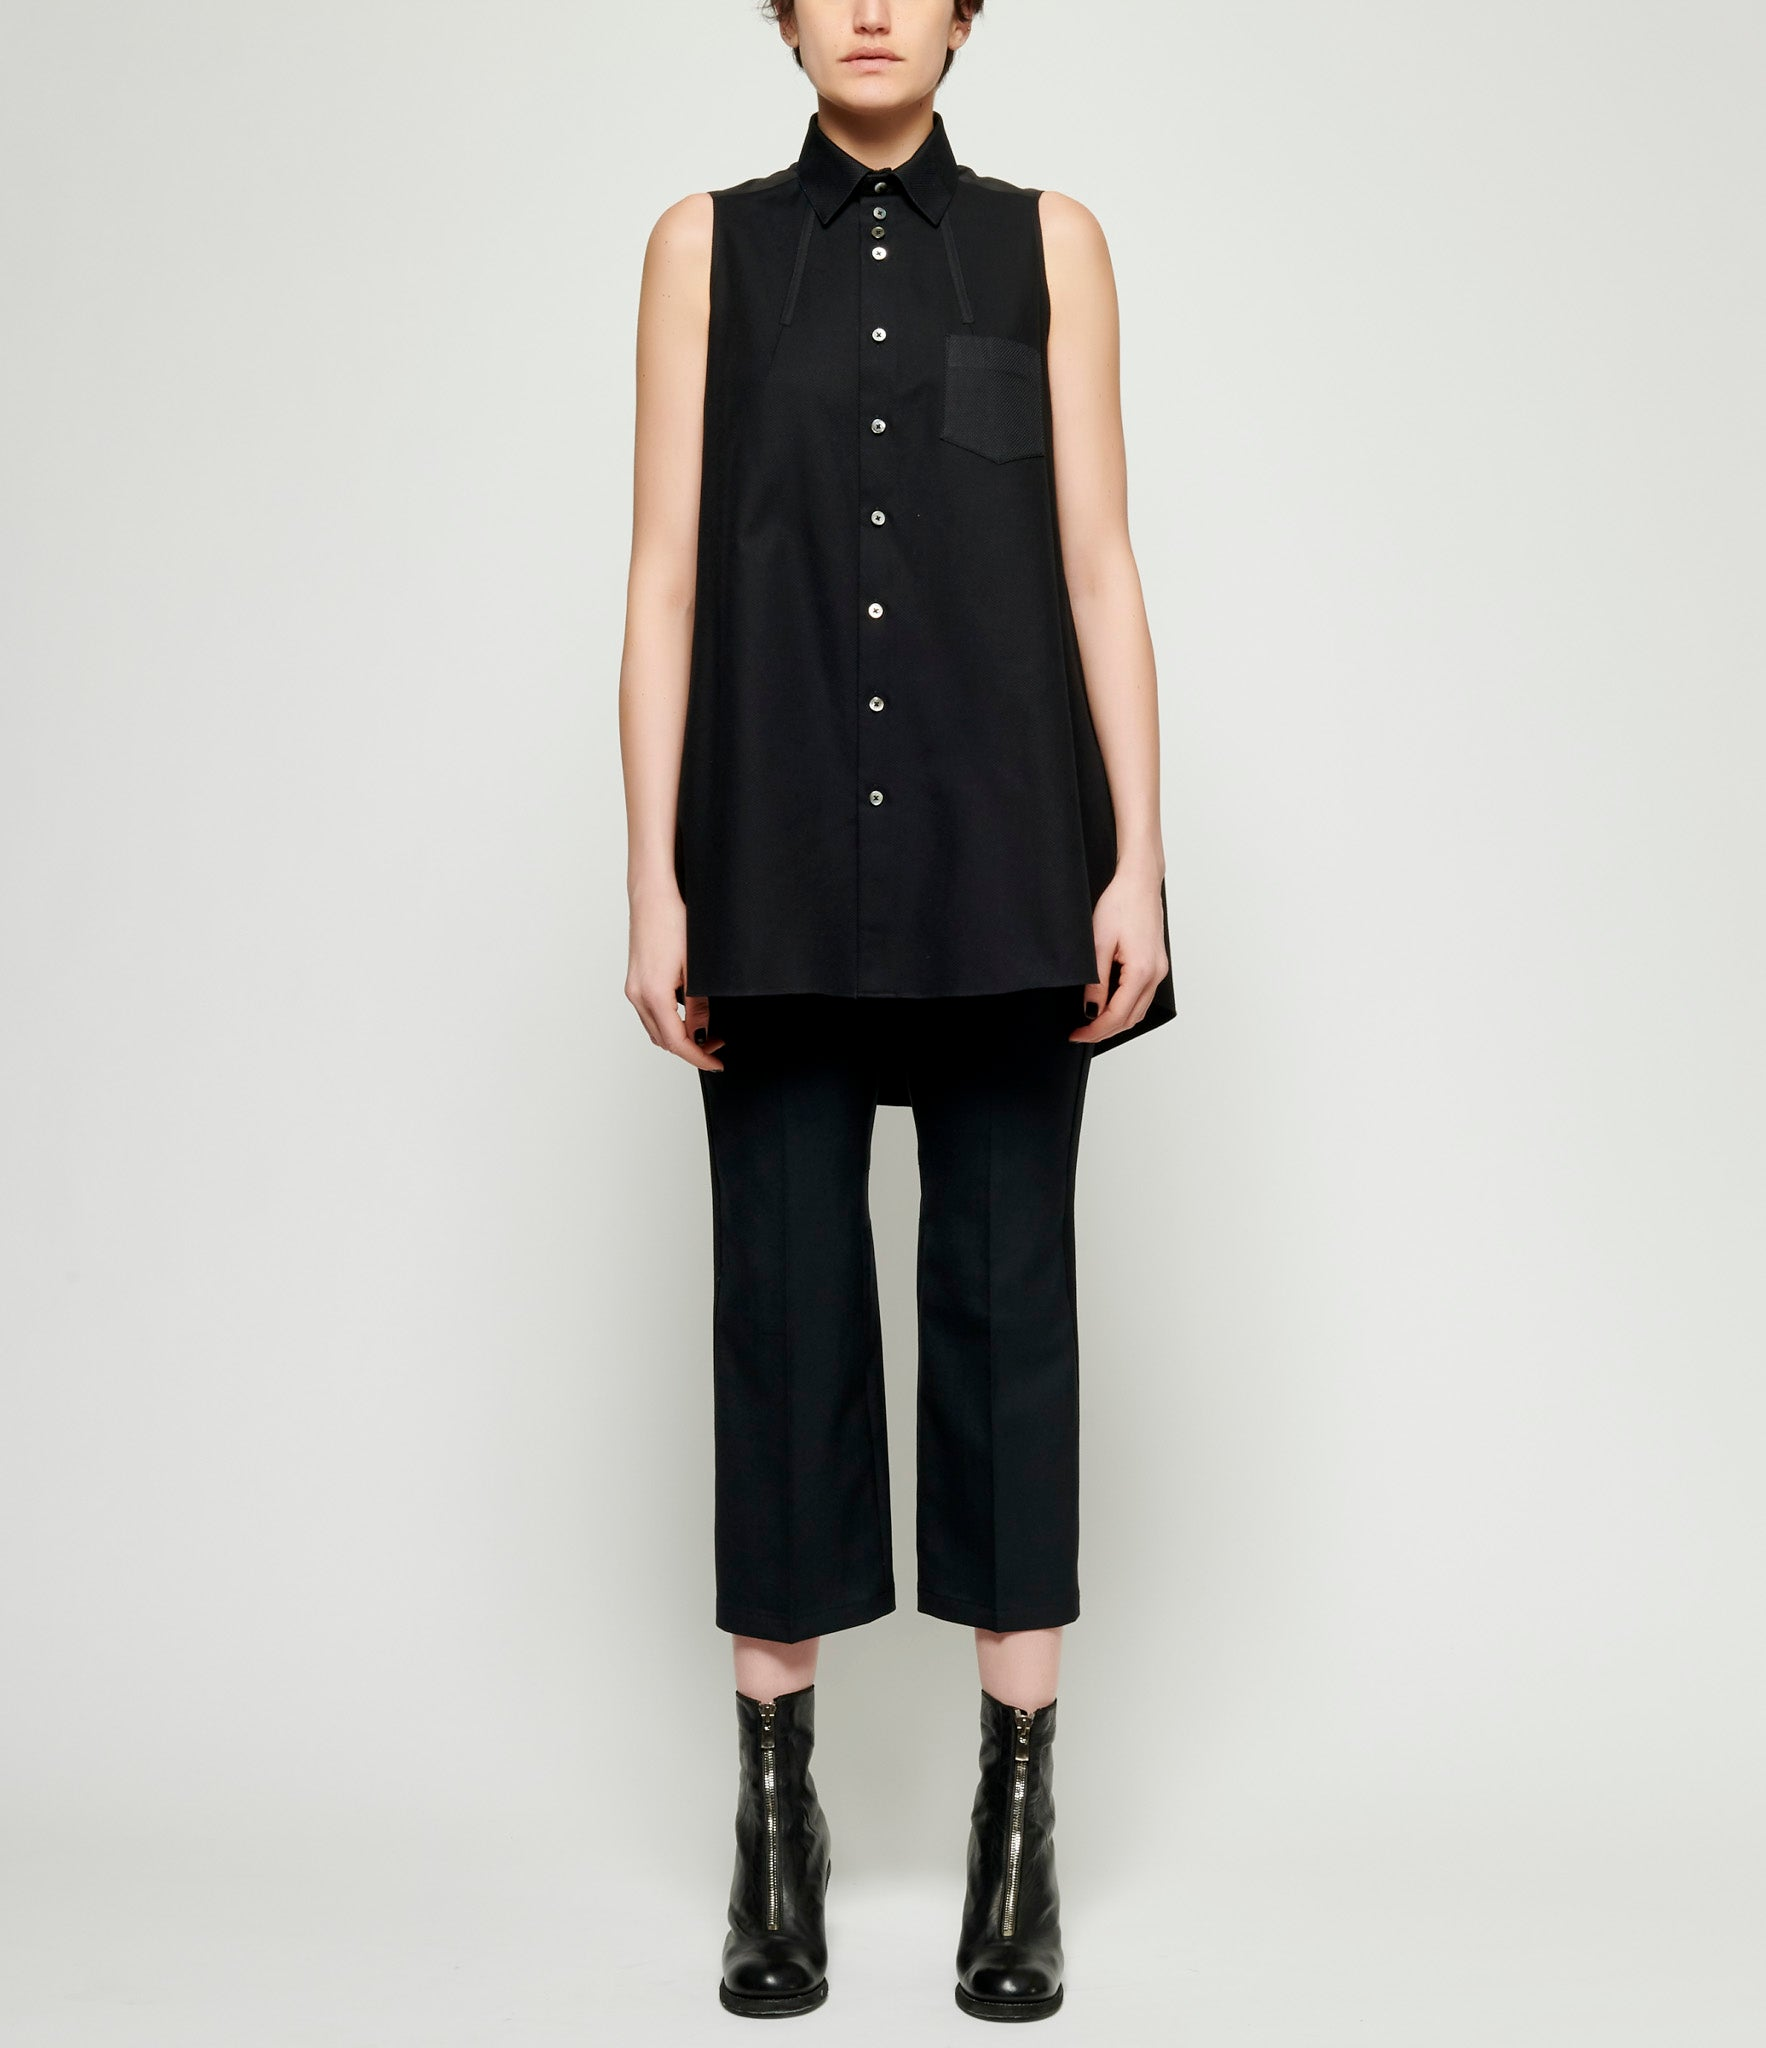 Shiro Sakai Black Formal Cotton Mix Sleeveless Long Shirt